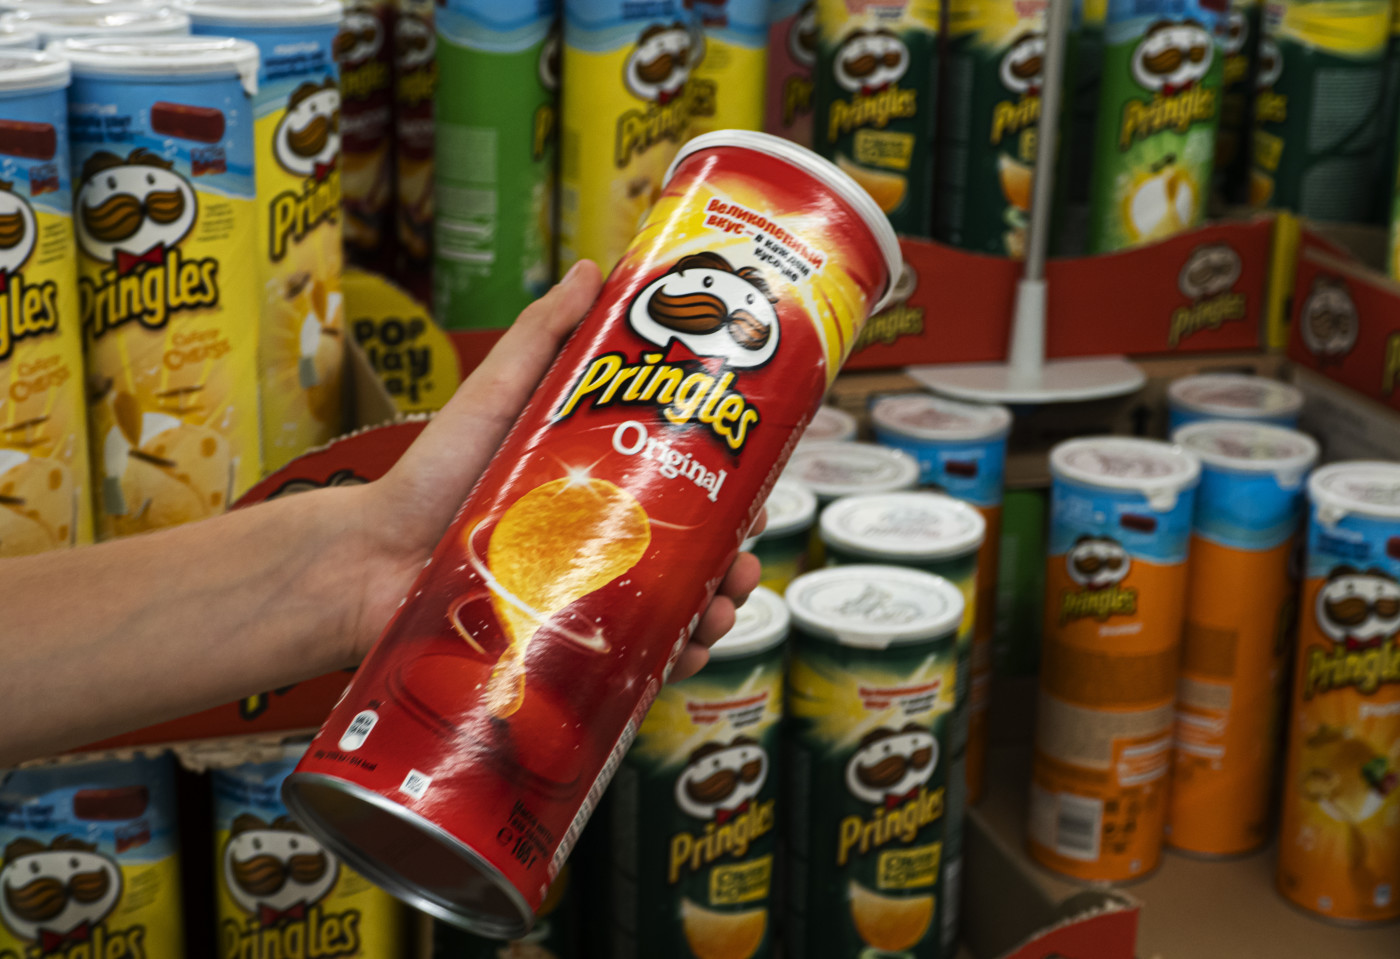 Hand holding original flavored Pringles tube in front of other flavor Pringles tubes